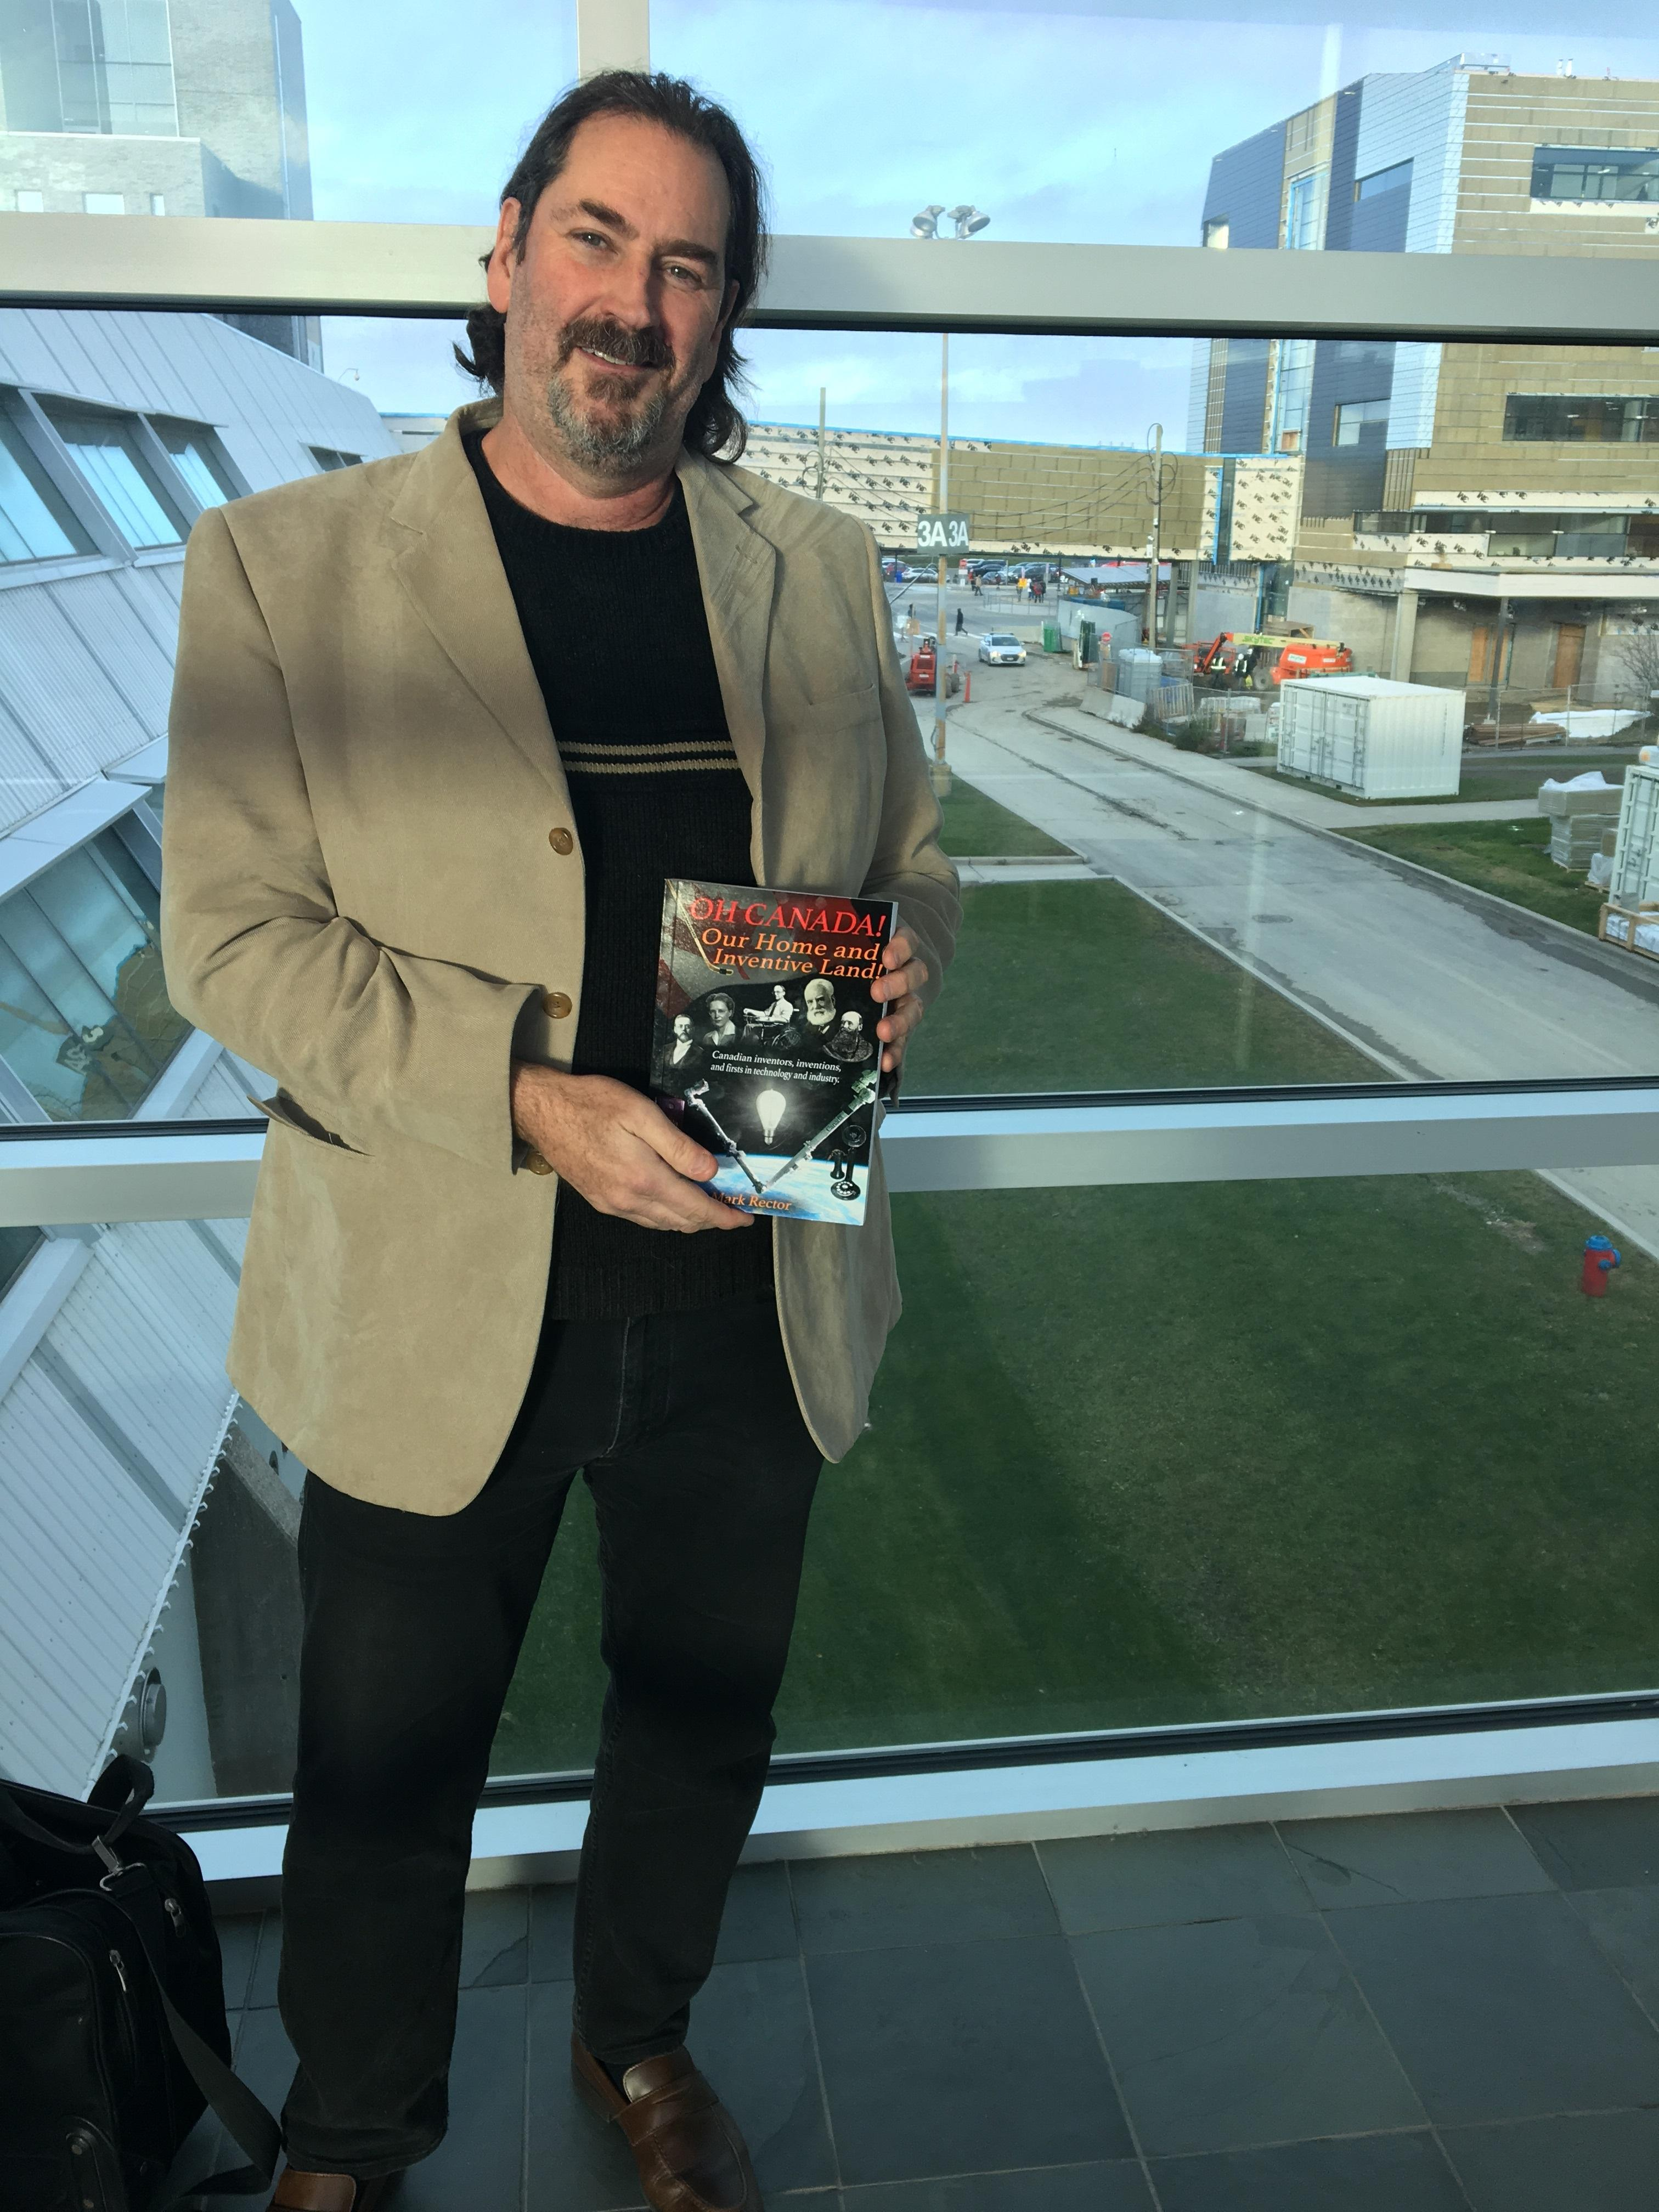 Professor Mark Rector with his book